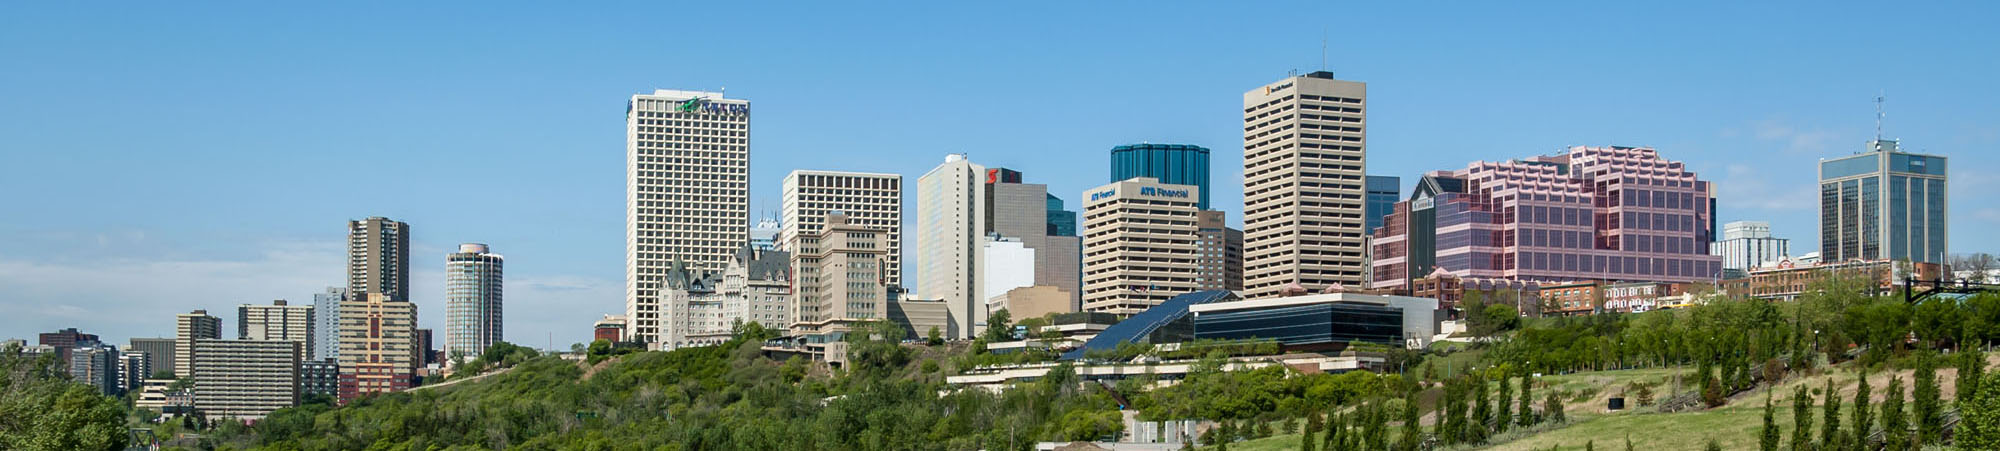 Photo looking over the river valley at downtown Edmonton Alberta for Vanguard Cleaning Systems